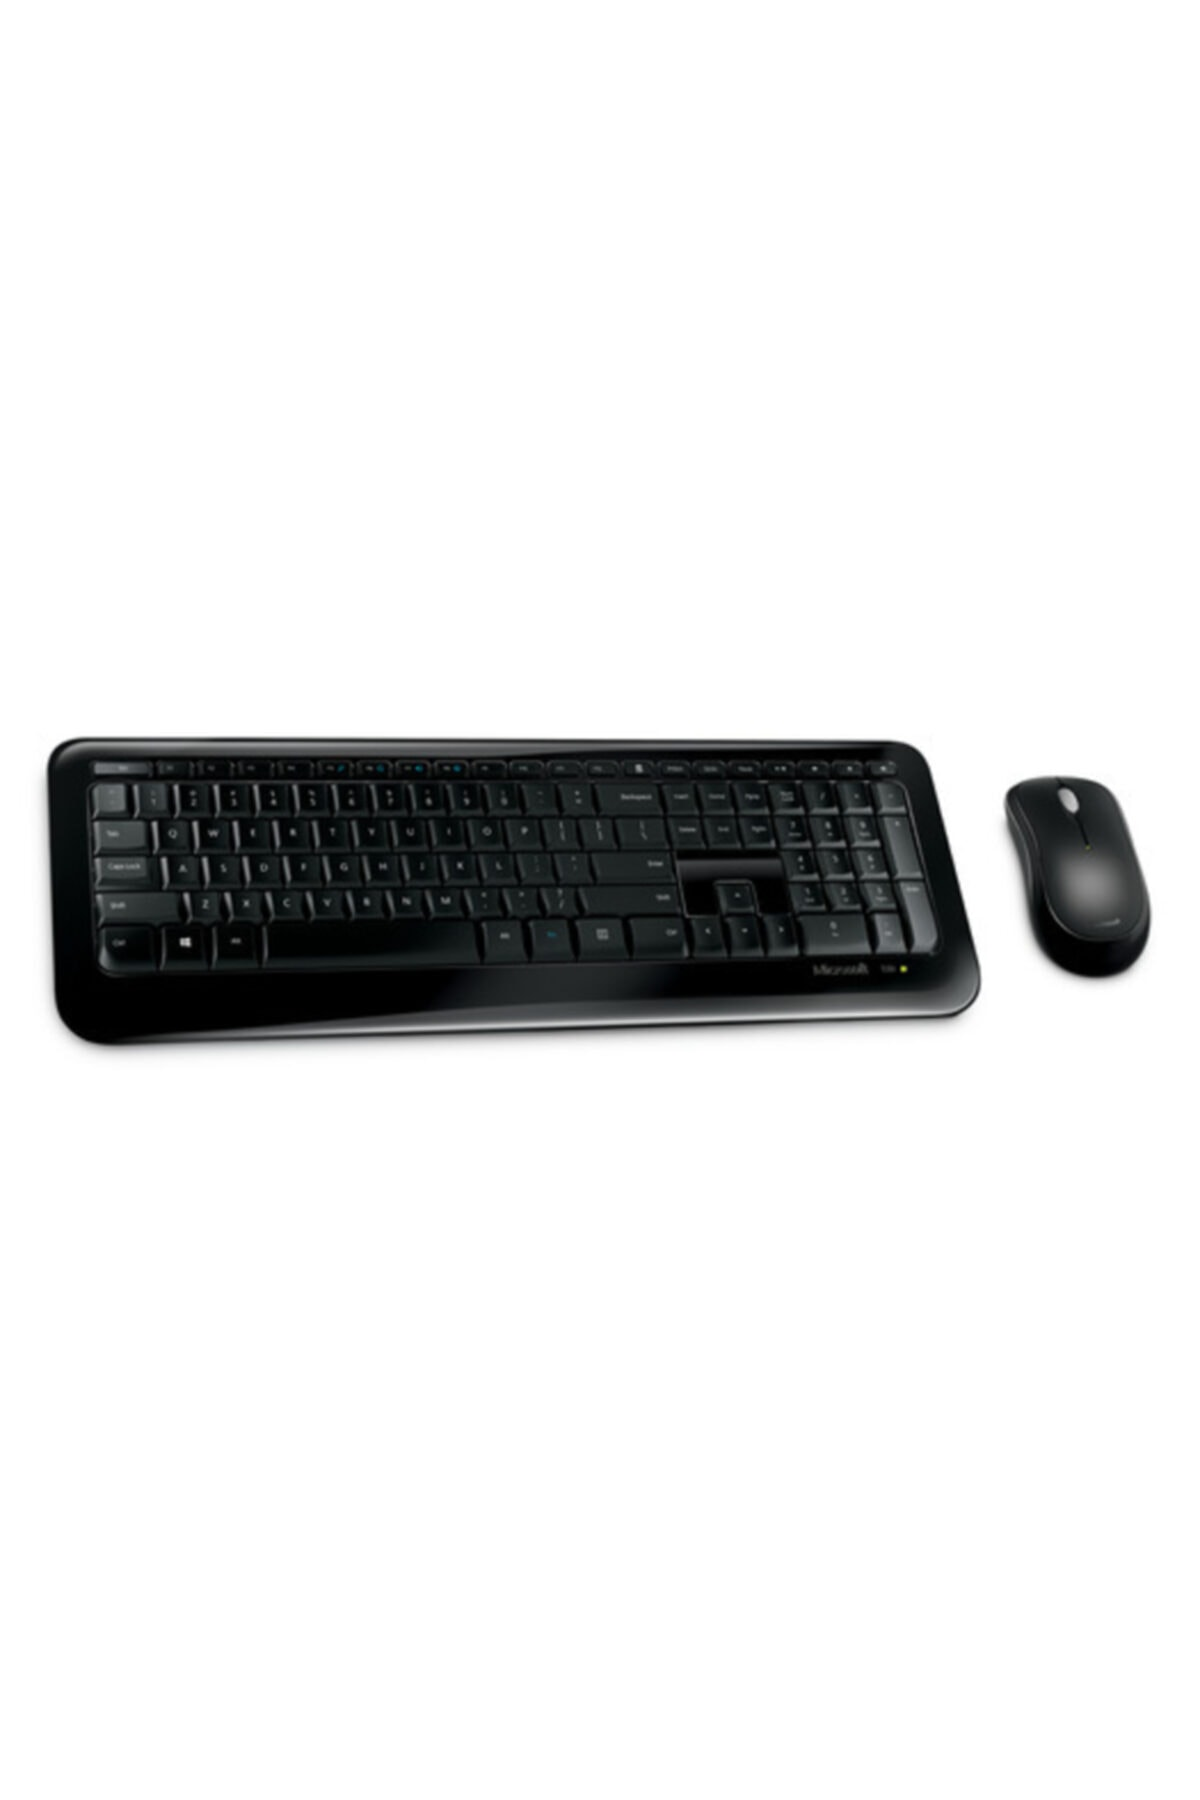 MICROSOFT Microsoft Wireless Desktop 850 Klavye Mouse Set PY9-00011 1